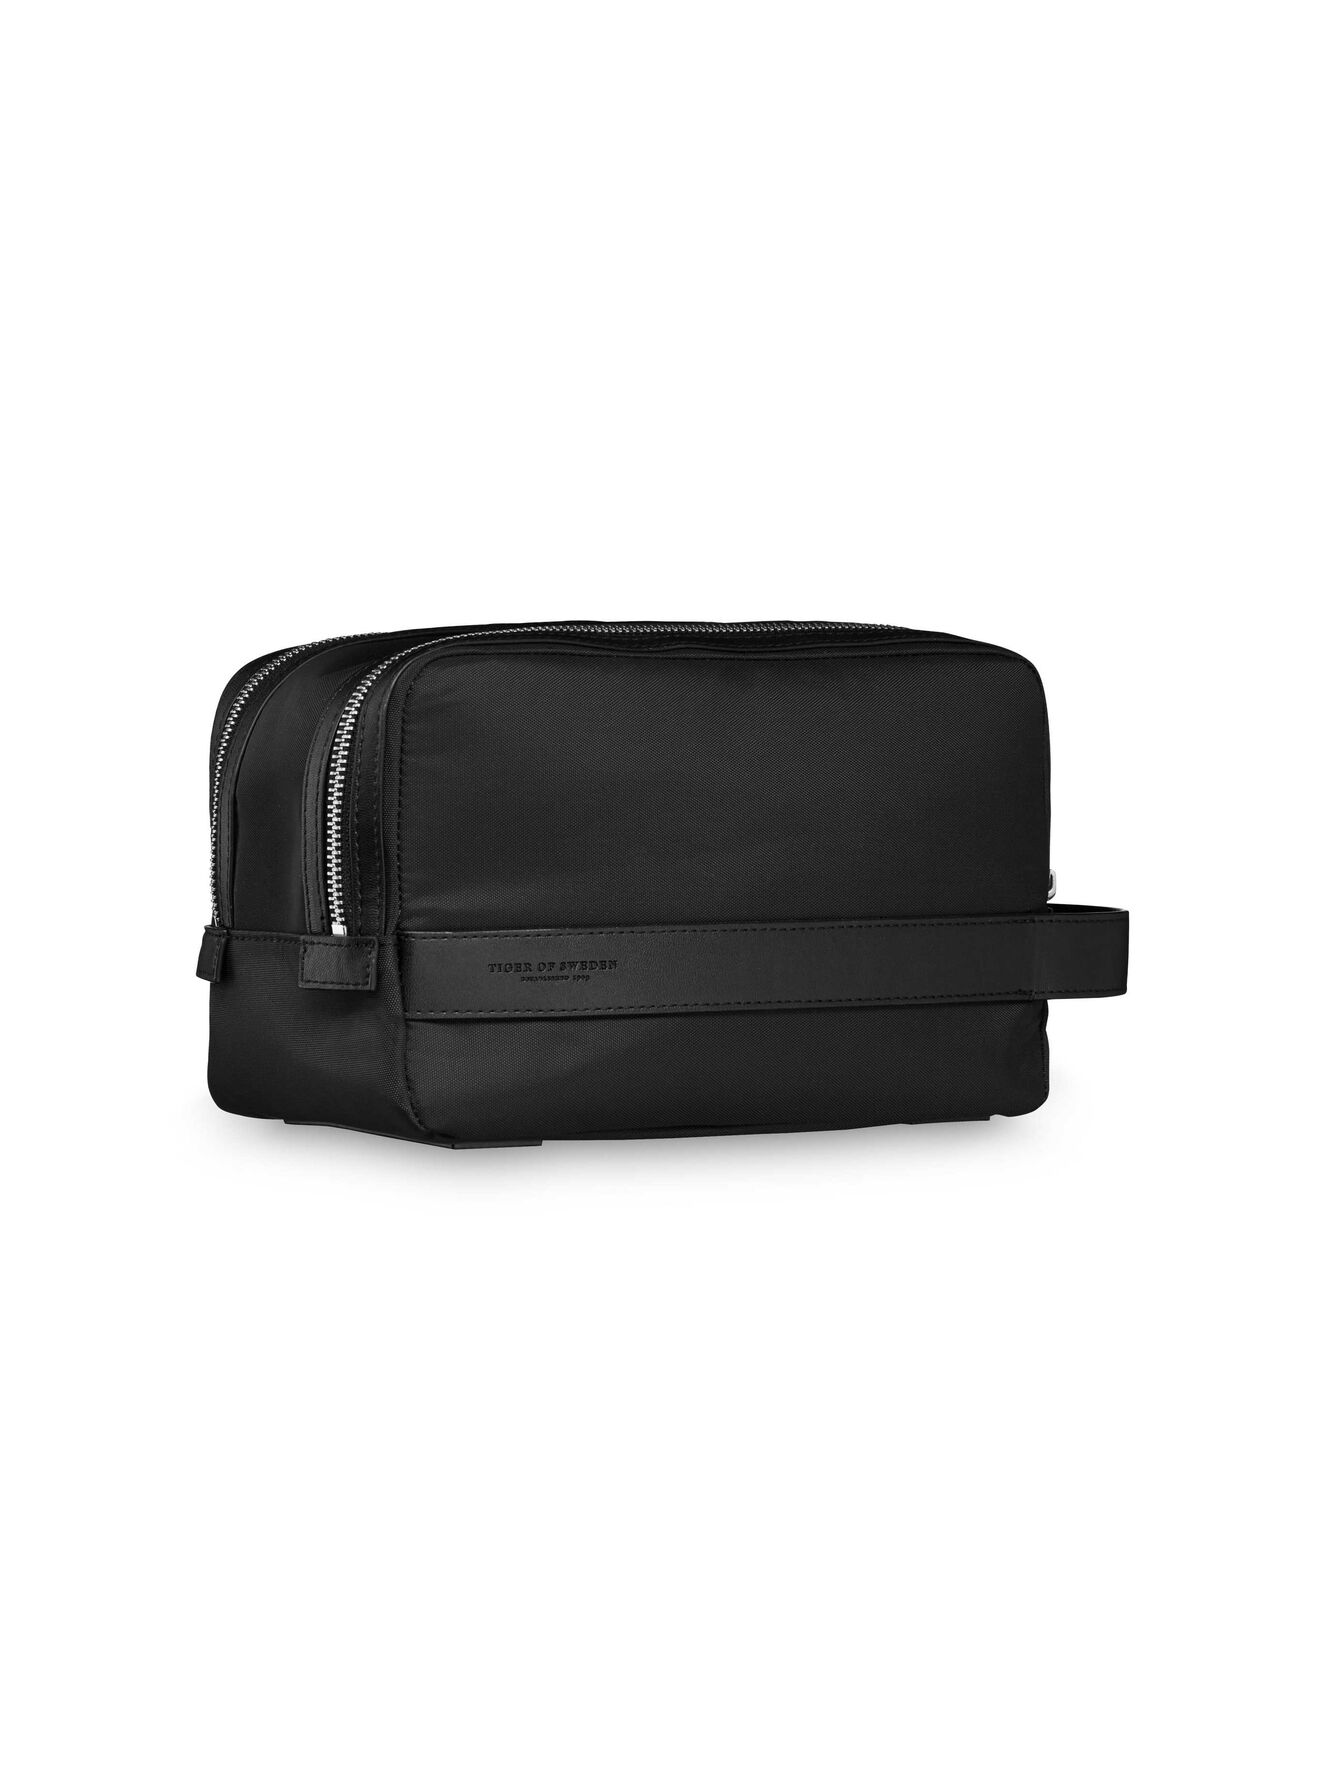 PIPARE TOILETRY BAG in Black from Tiger of Sweden